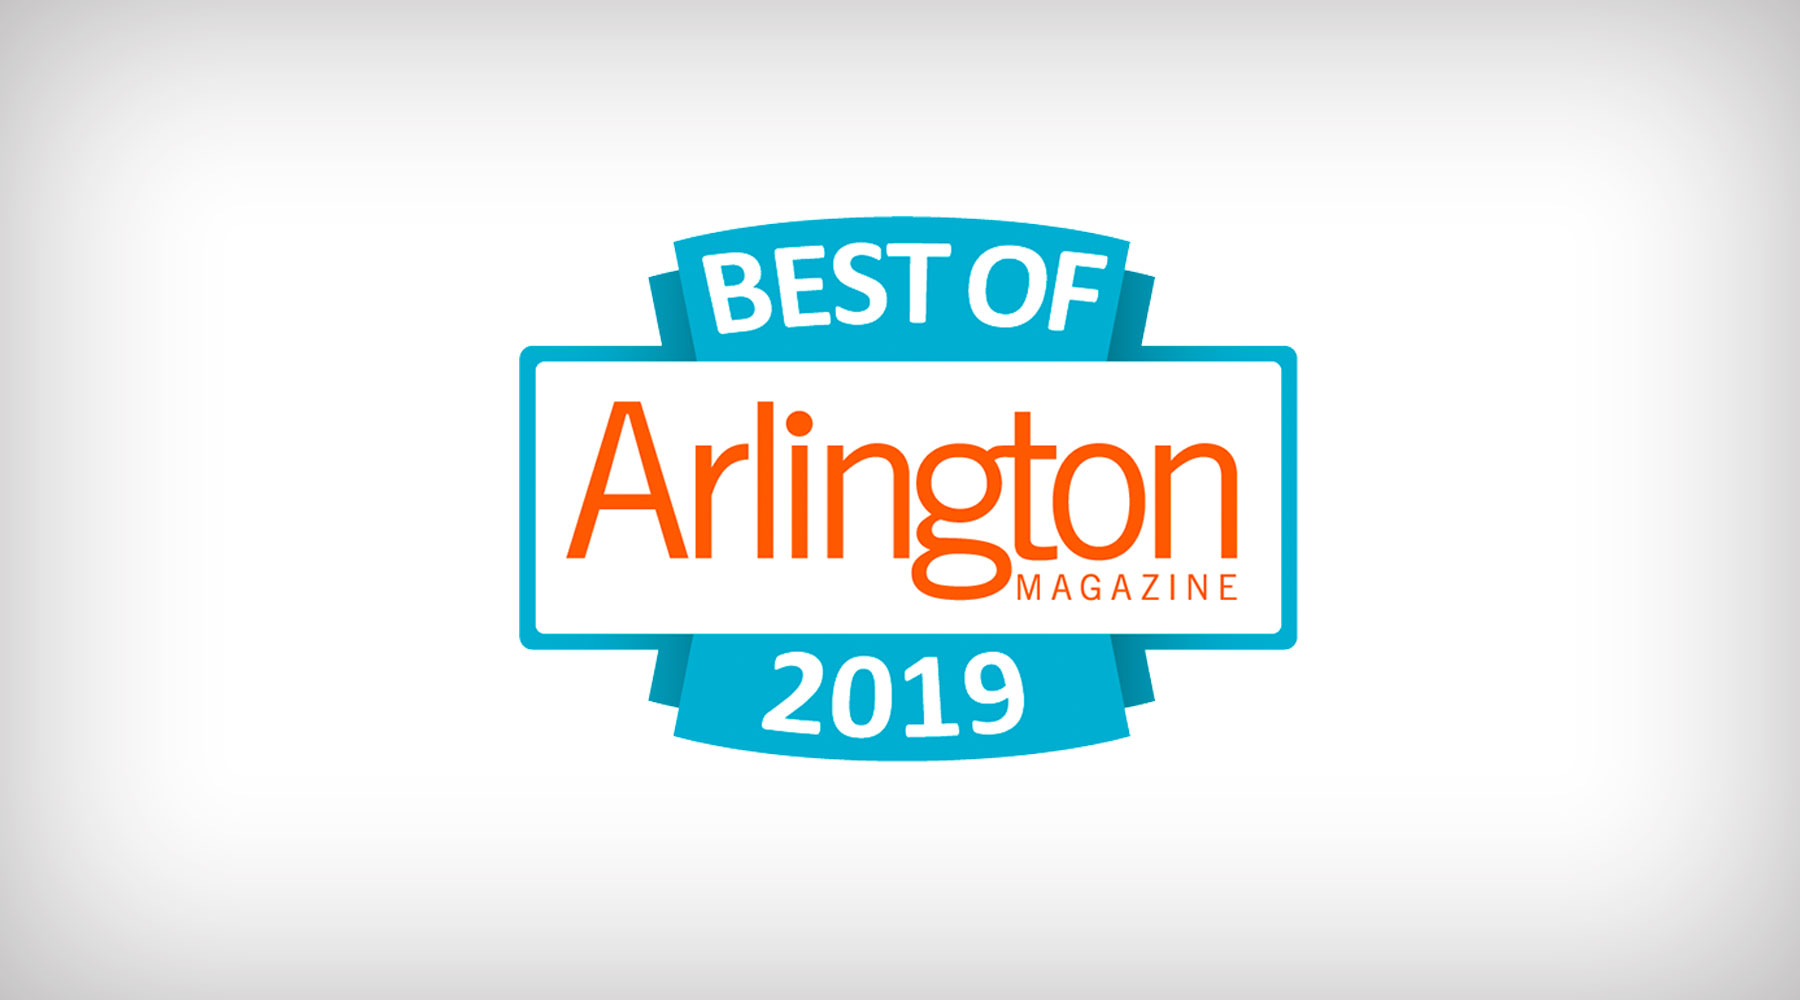 Best of Arlington 2019